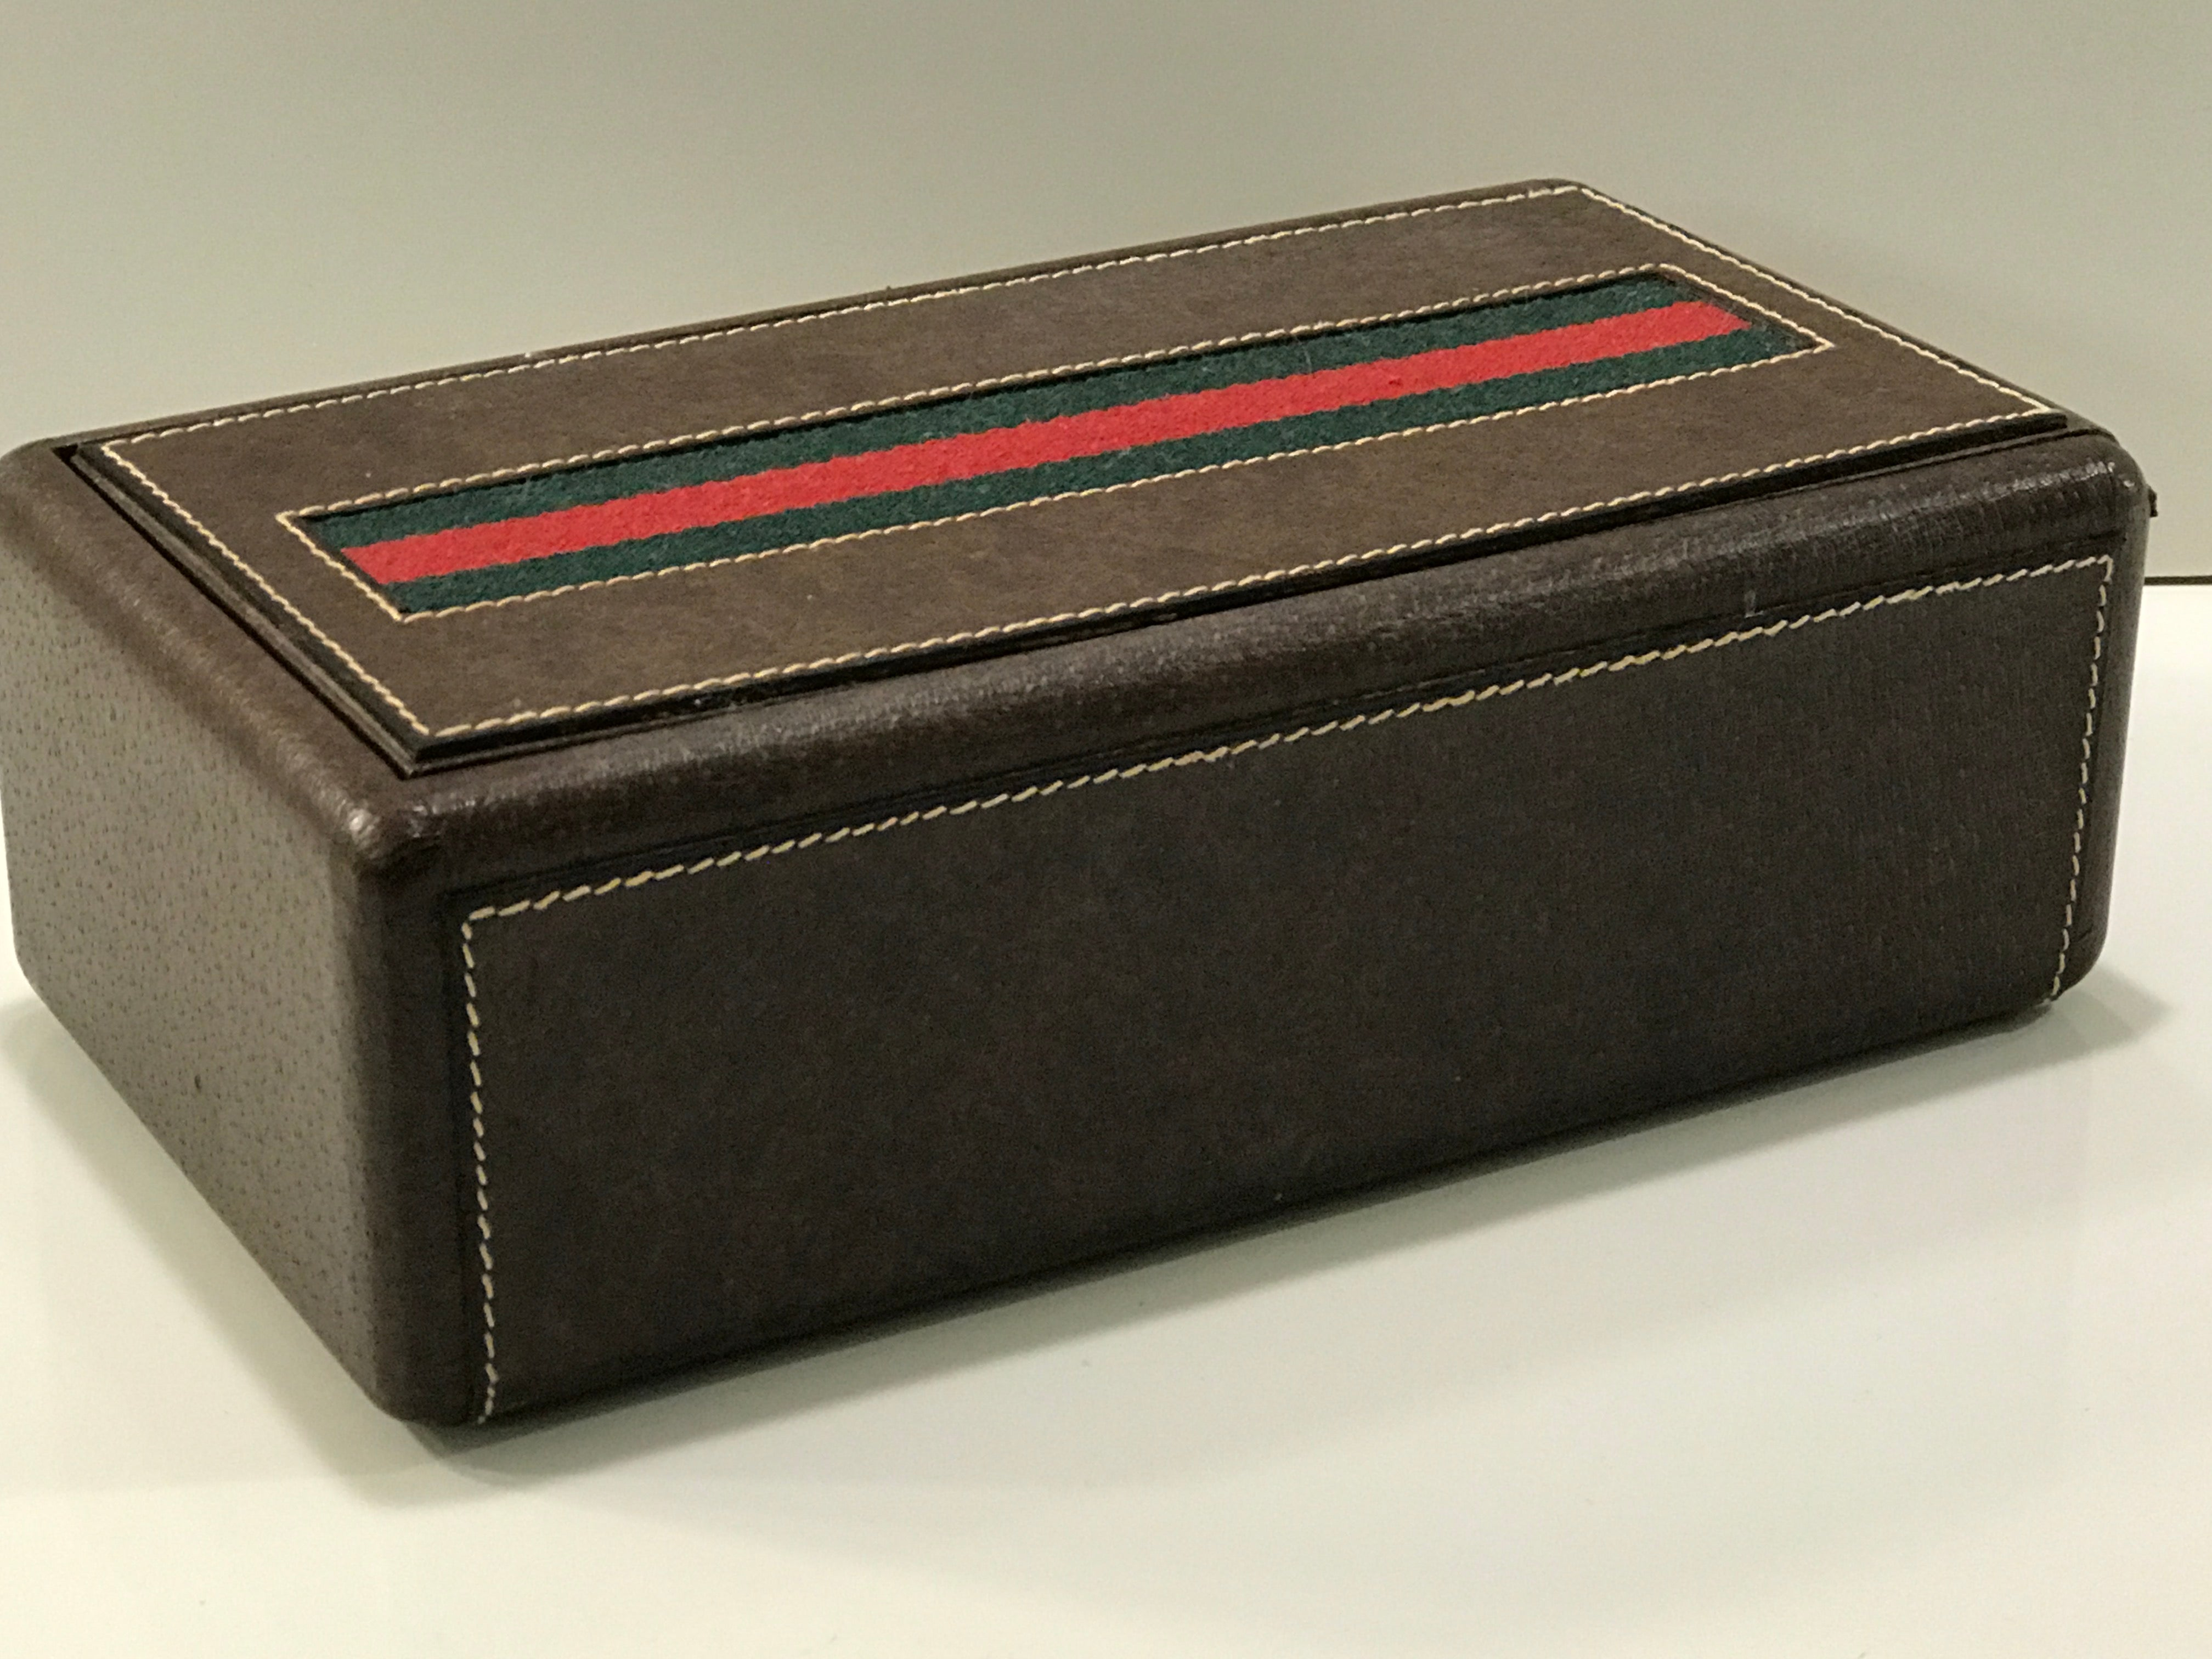 4aec1d6e7894 Gucci Leather Mens Jewelry or Watch Box with Divided Interior at 1stdibs